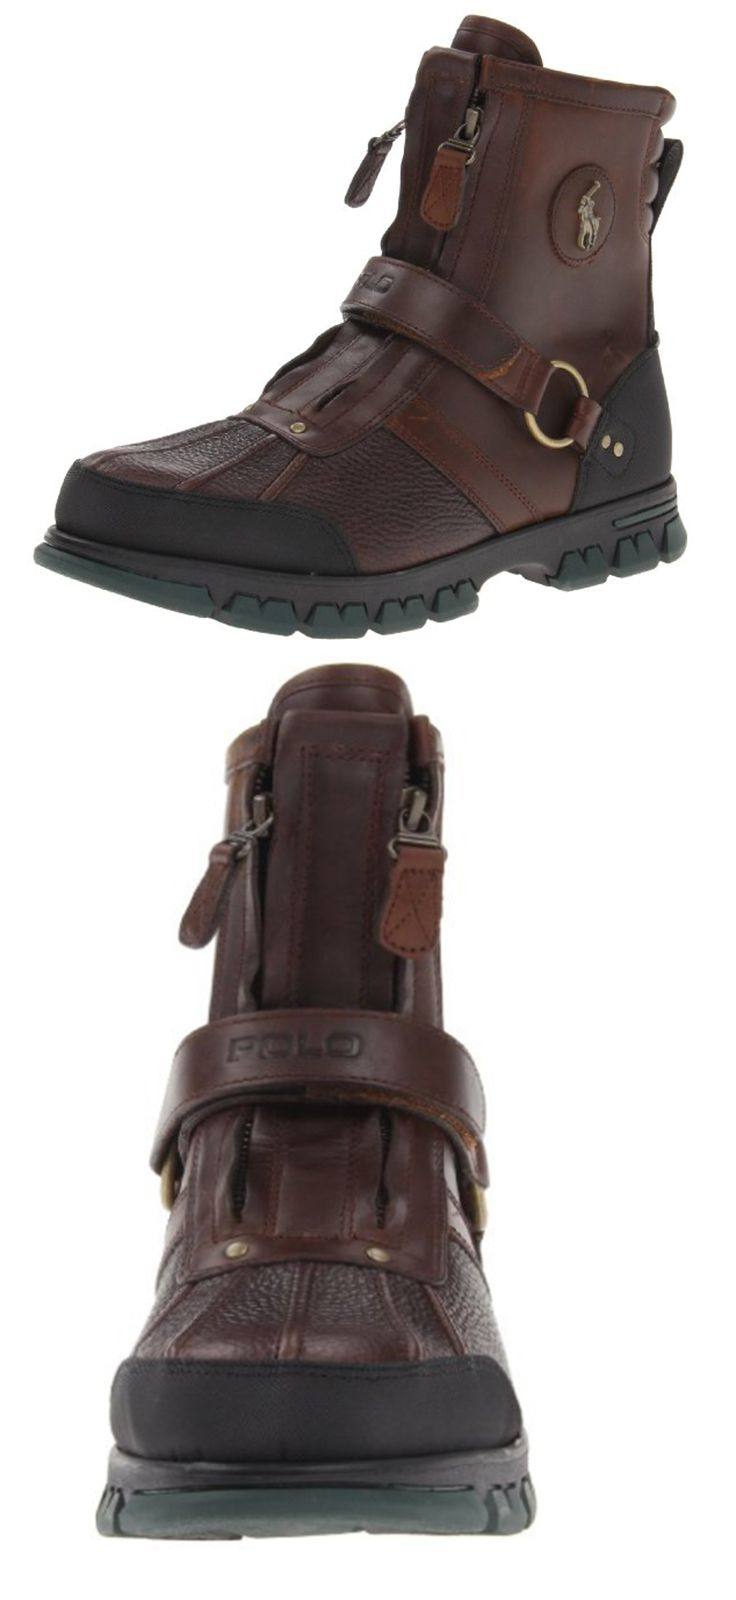 Polo Ralph Lauren Men's Conquest Hi III-C Boot  Nothing wrong with polo boots, just can't stand this style the zippers are ridiculous